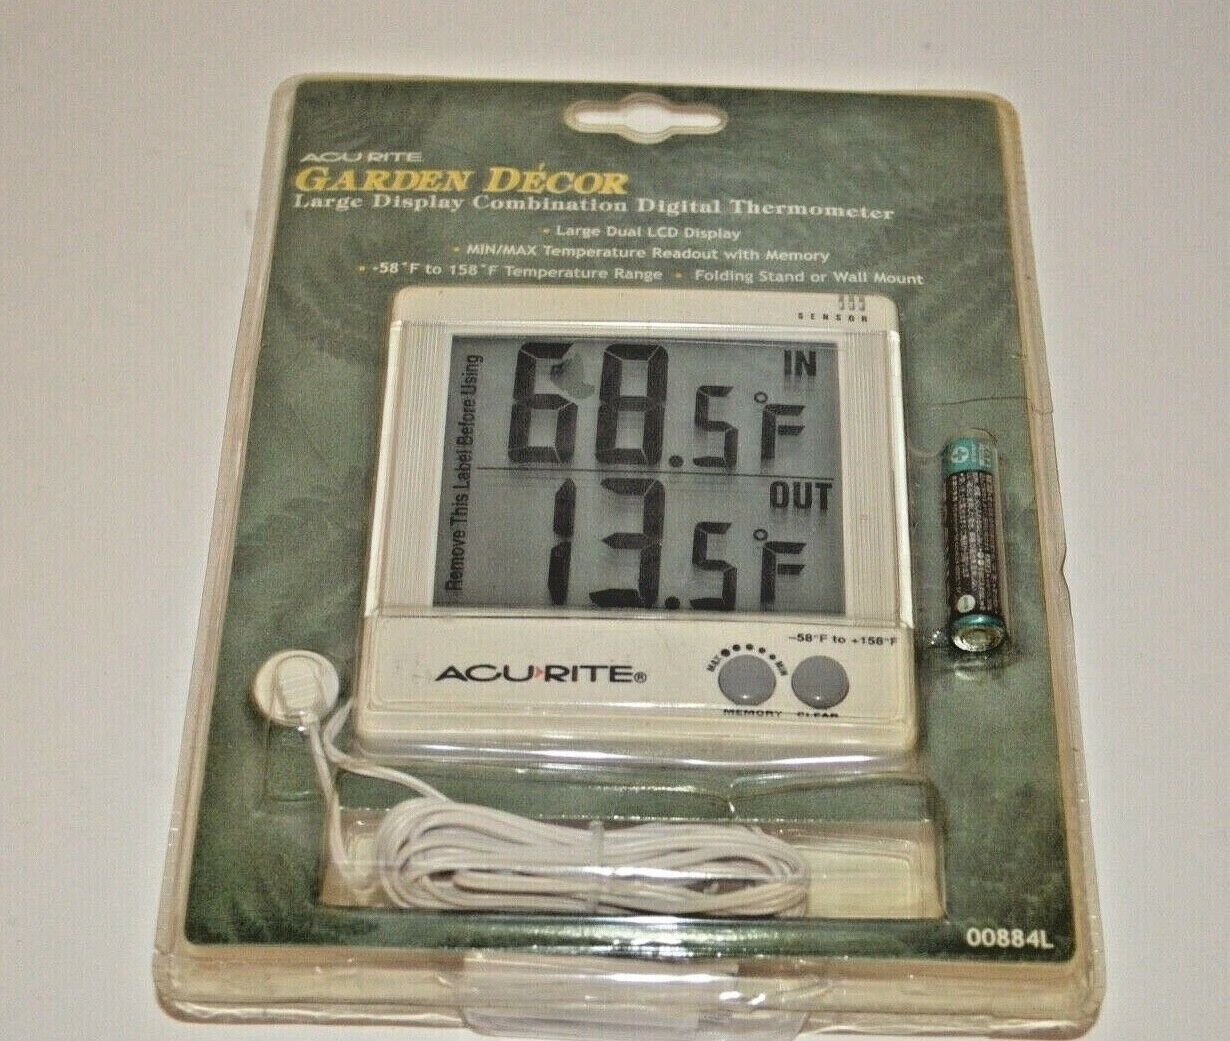 Acurite Garden Decor Large Display Combination Digital Thermometer 00884L